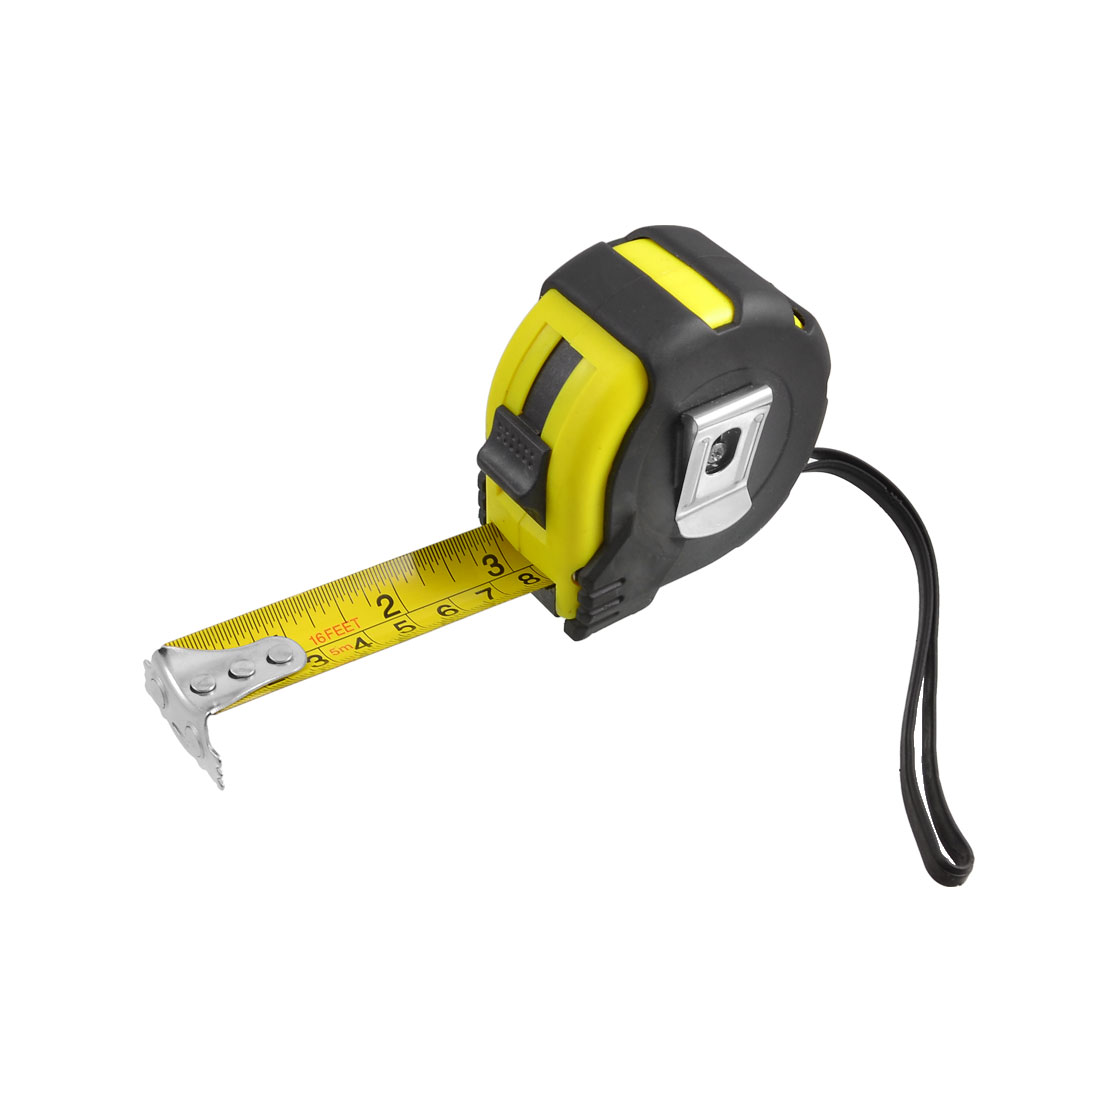 5M-16Ft-Length-Retractable-Magnetic-Carpenter-Ruler-Tape-Measuring-Tool-w-Strap